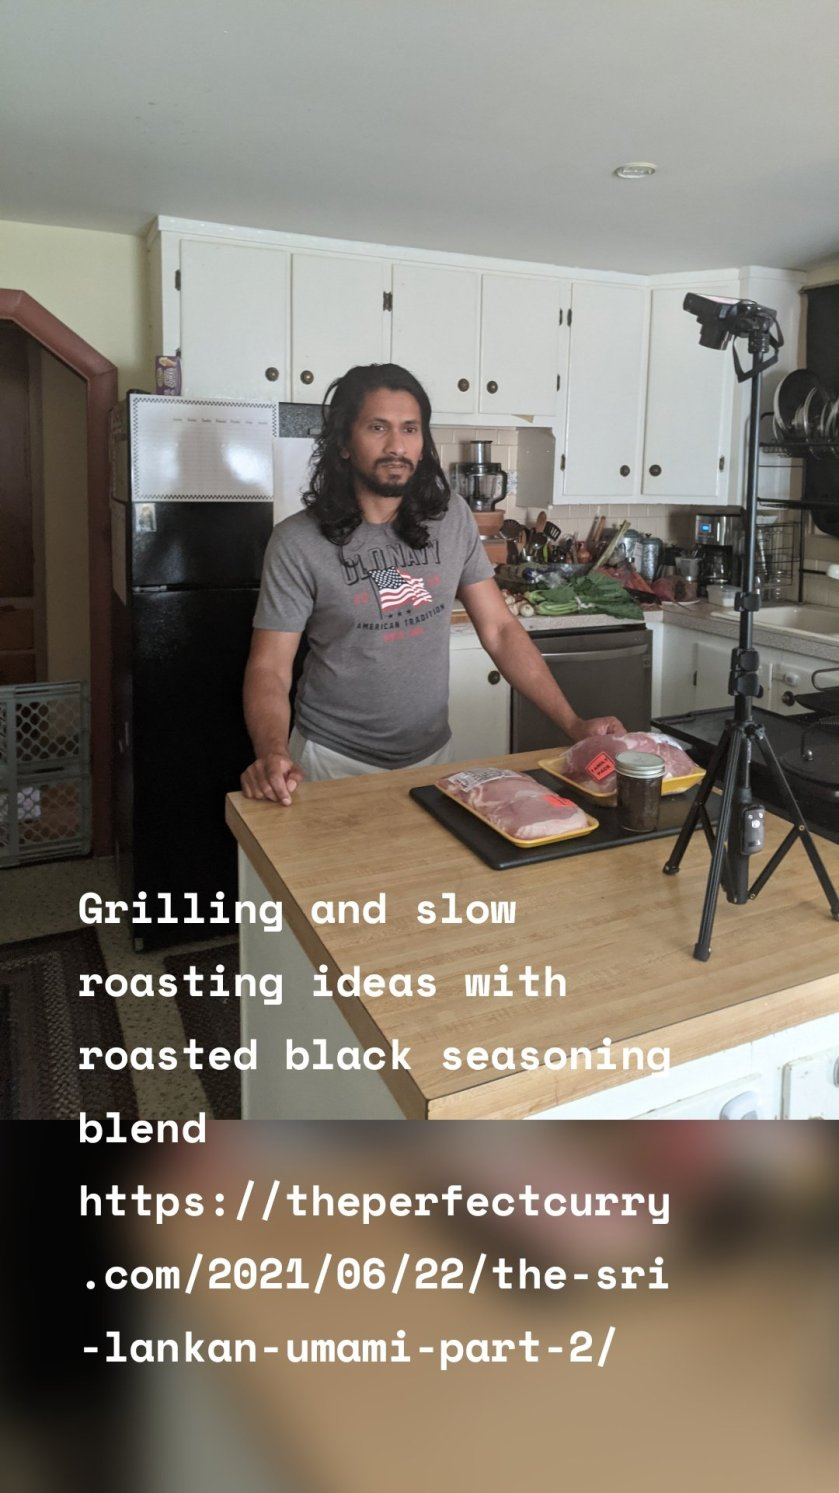 Grilling and slow roasting ideas with roasted black seasoning blend https://theperfectcurry.com/2021/06/22/the-sri-lankan-umami-part-2/